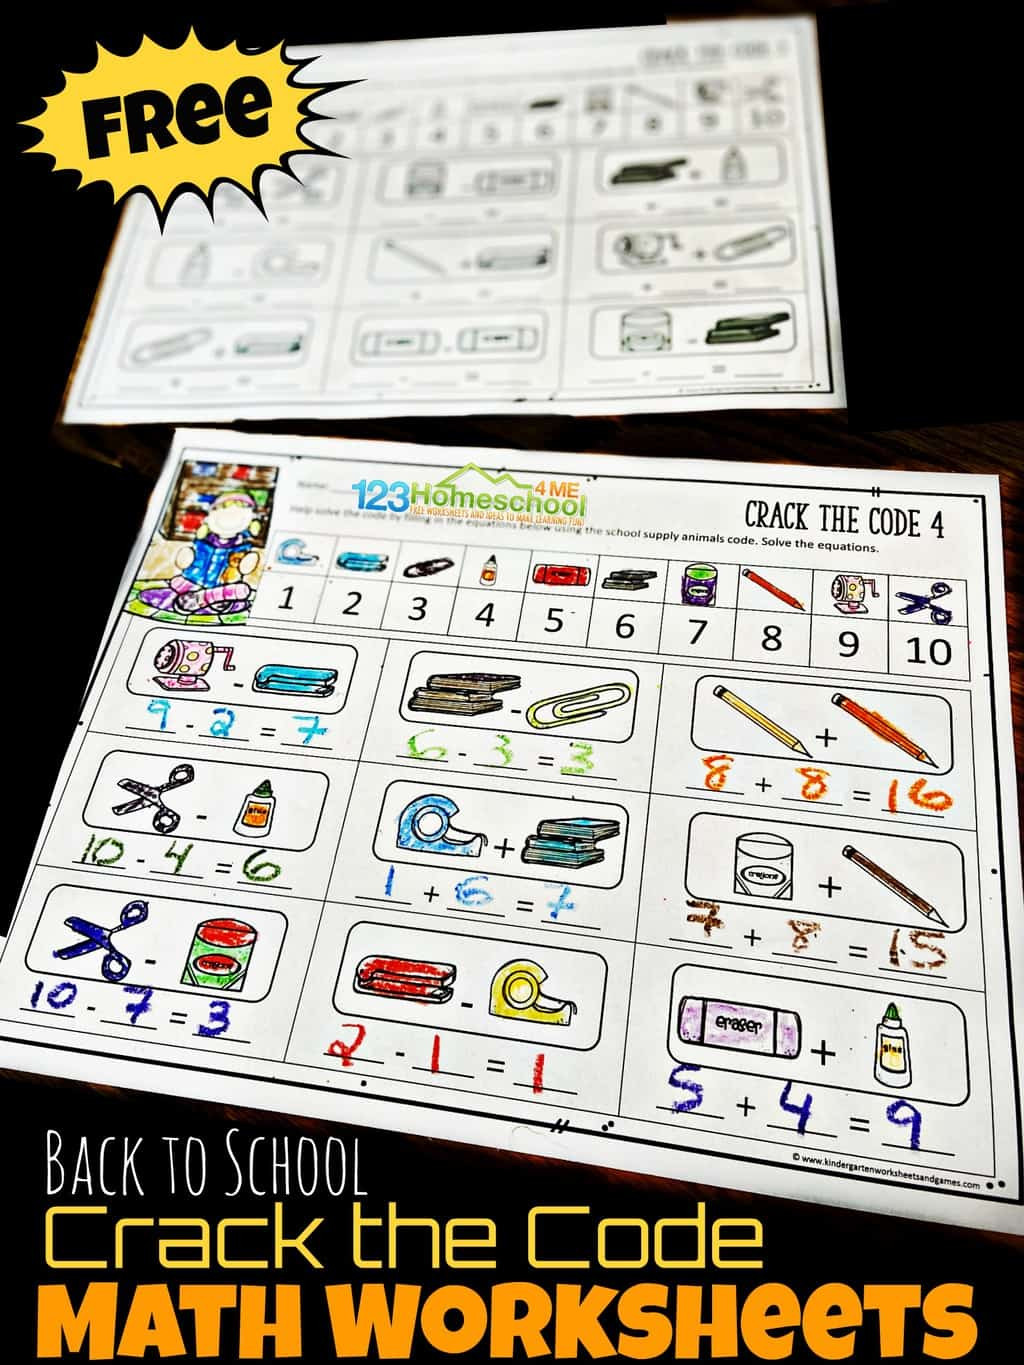 Crack the Code Math Worksheet Free Back to School Crack the Code Worksheets